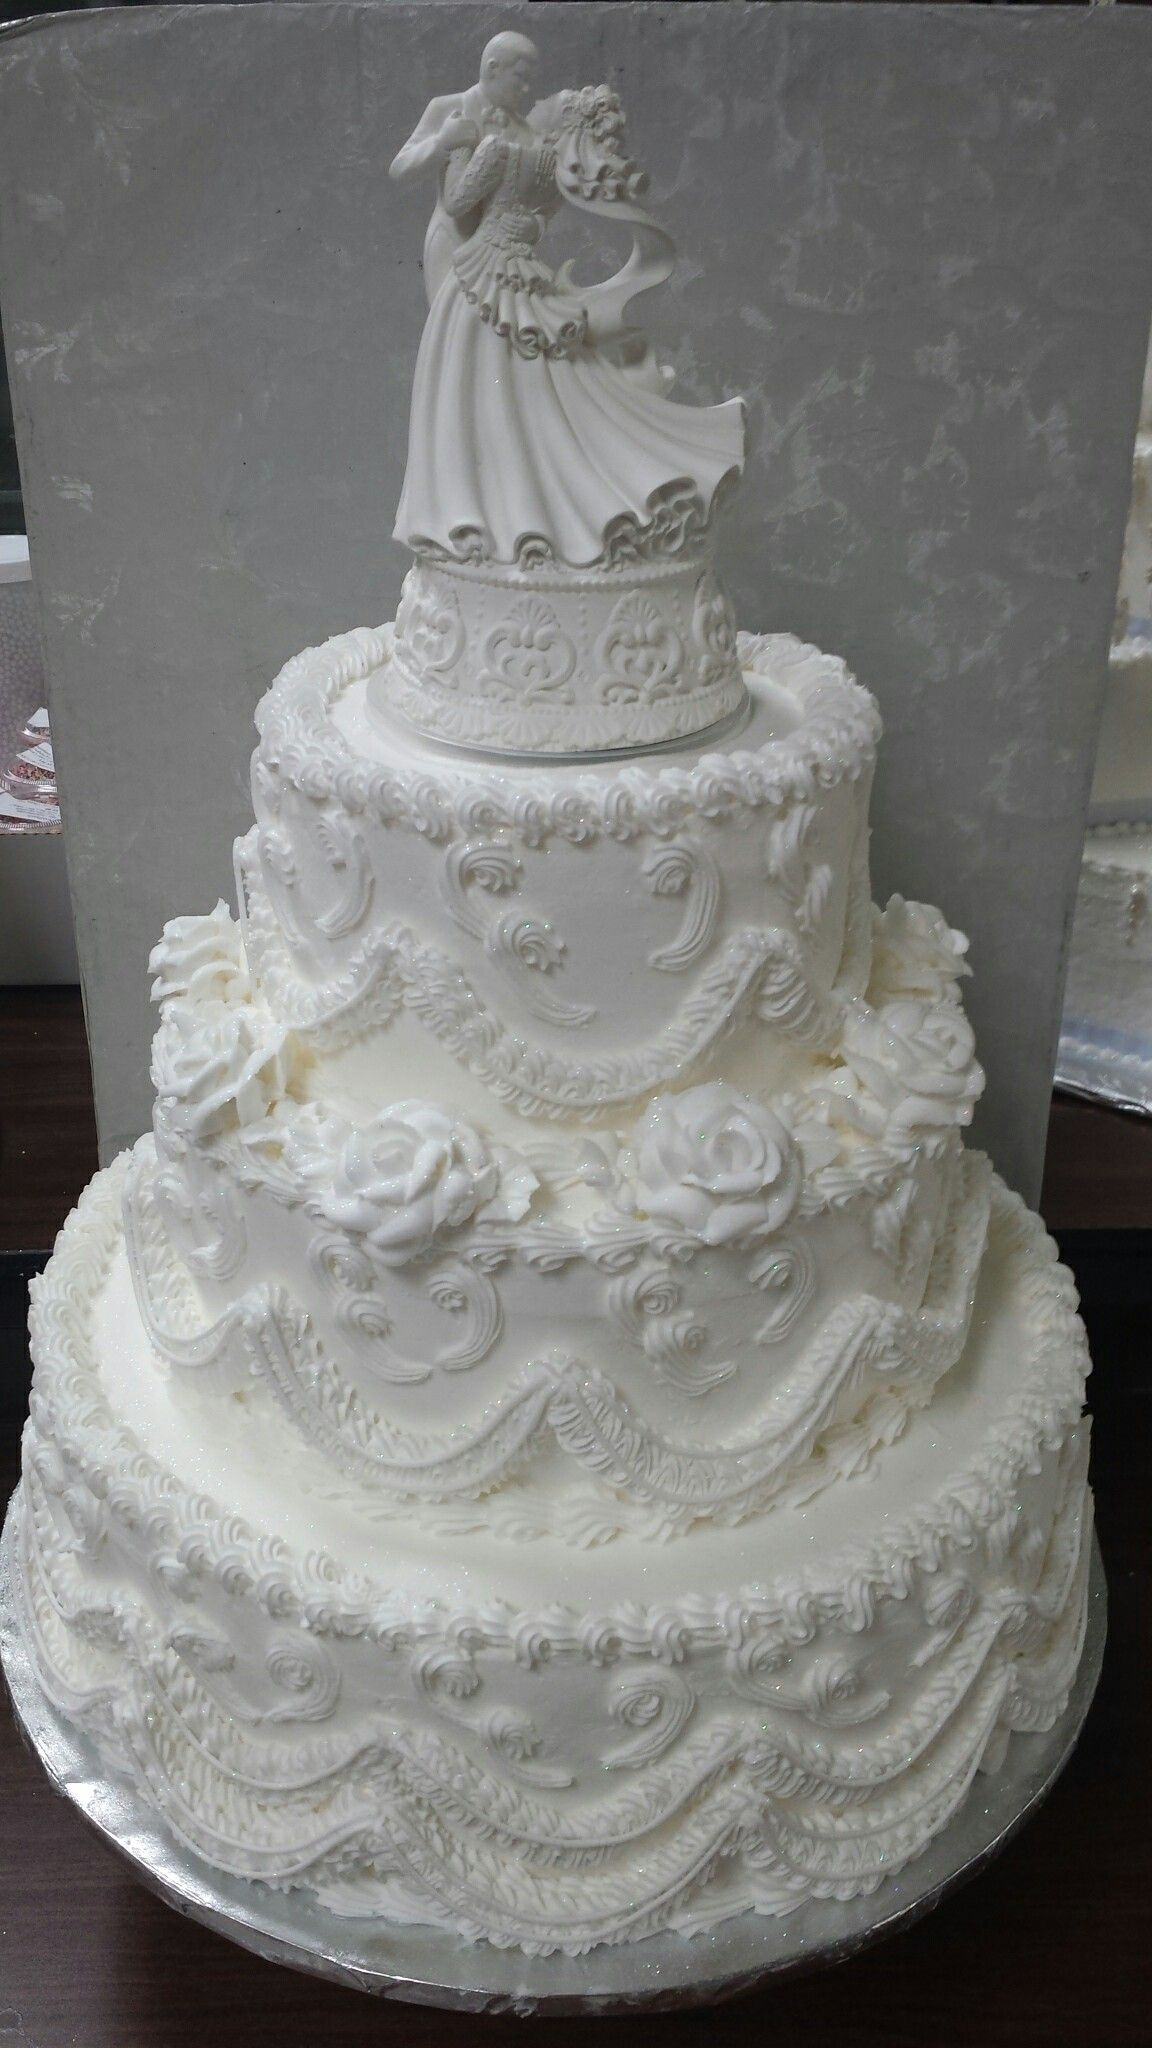 Not so old fashioned wedding cake. Lots of fluff, roses, and string ...